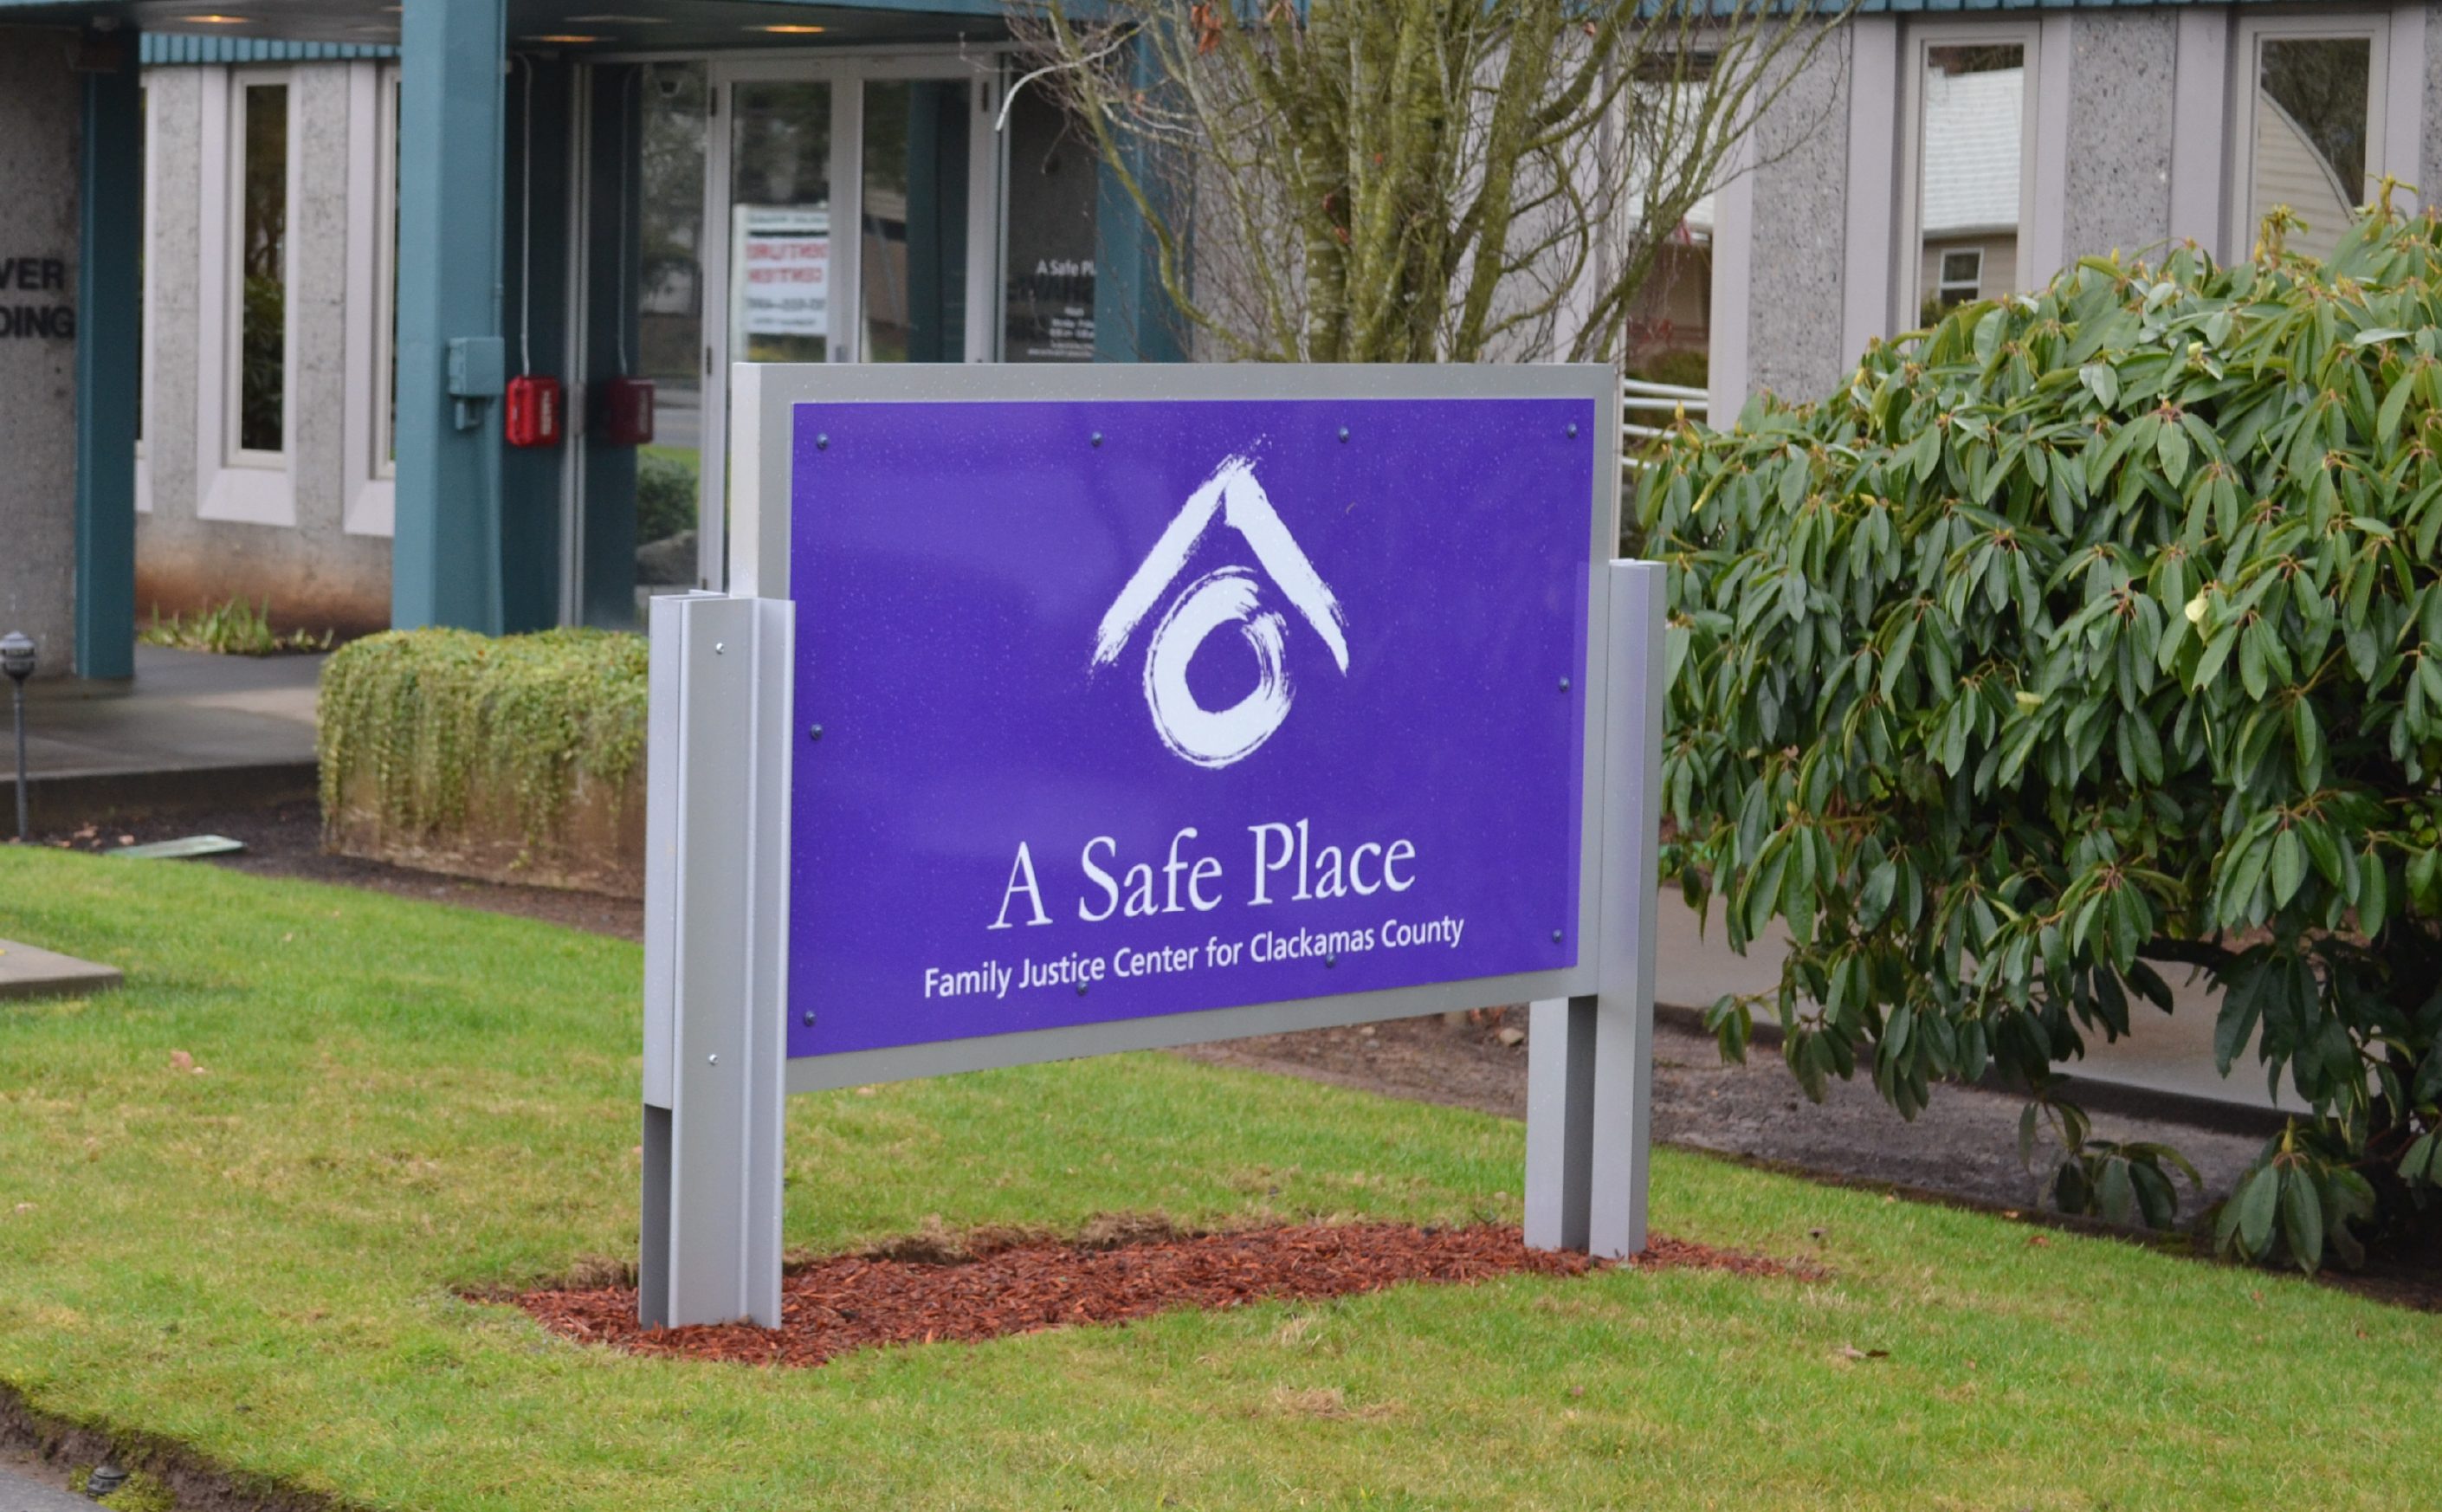 A Safe Place Family Justice Center sign